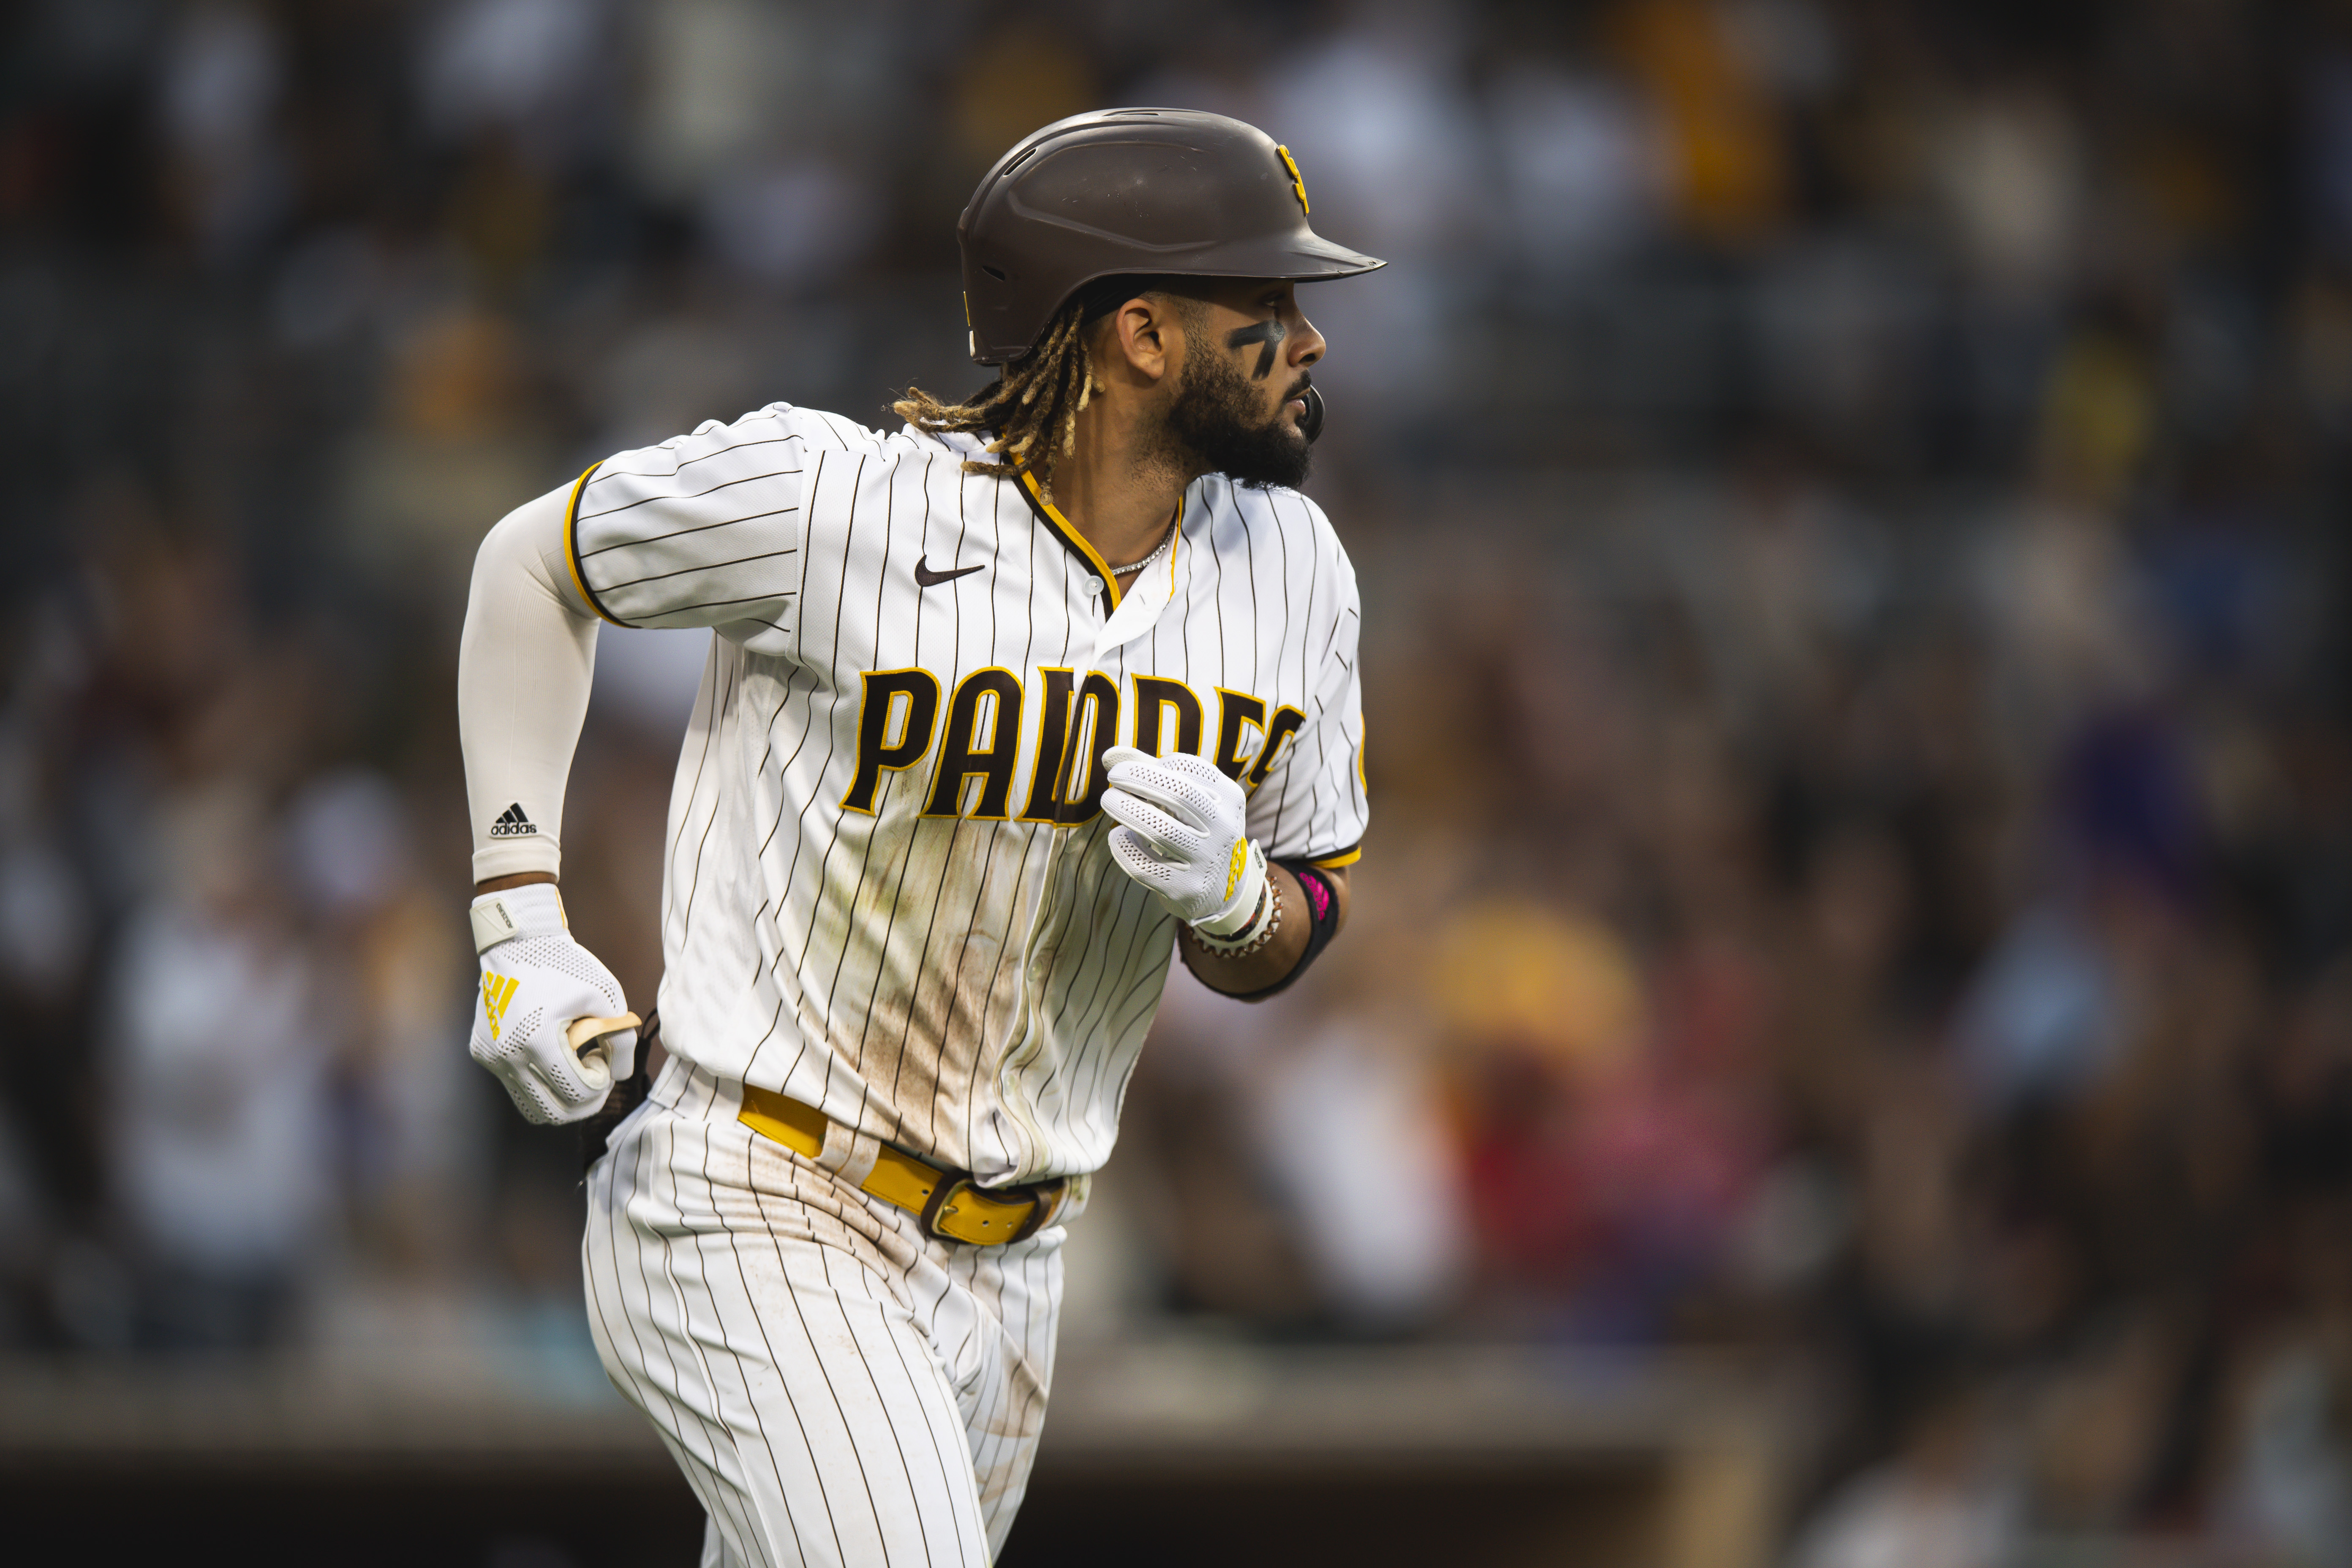 Fernando Tatis Jr #23 of the San Diego Padres hits a home run in the fourth inning against the Washington Nationals on July 8, 2021 at Petco Park in San Diego, California.